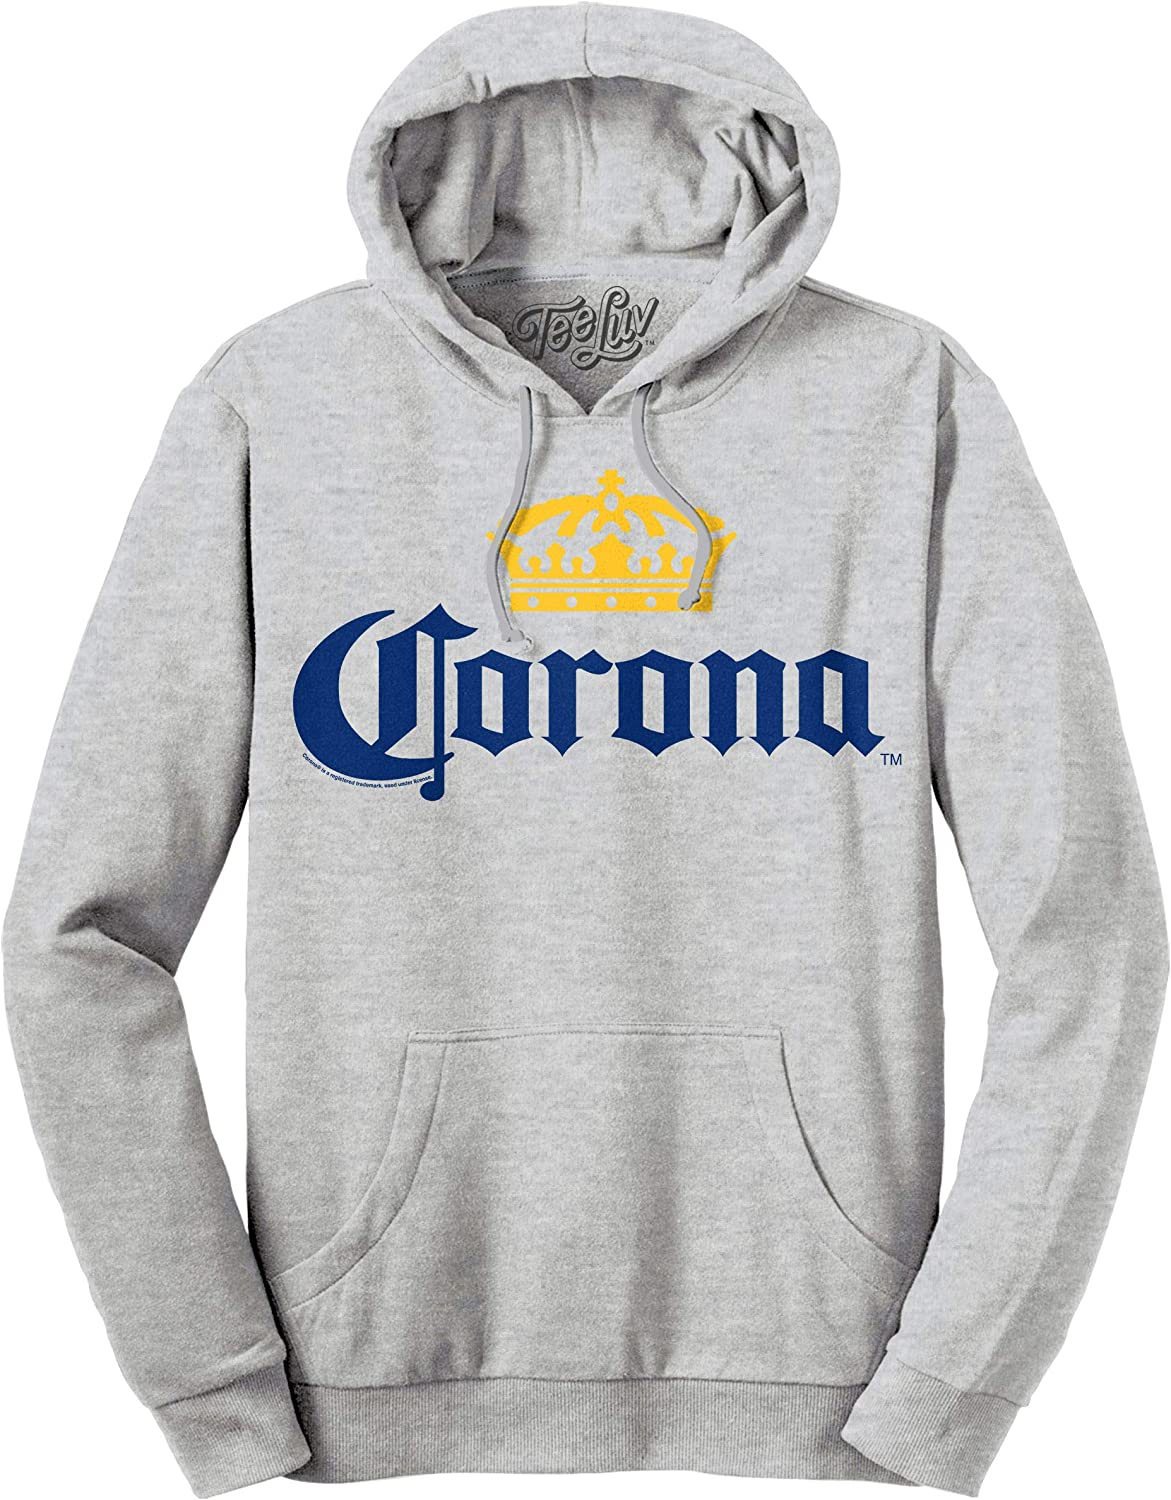 Amazon Com Tee Luv Corona Hoodie Hooded Corona Beer Sweatshirt Clothing